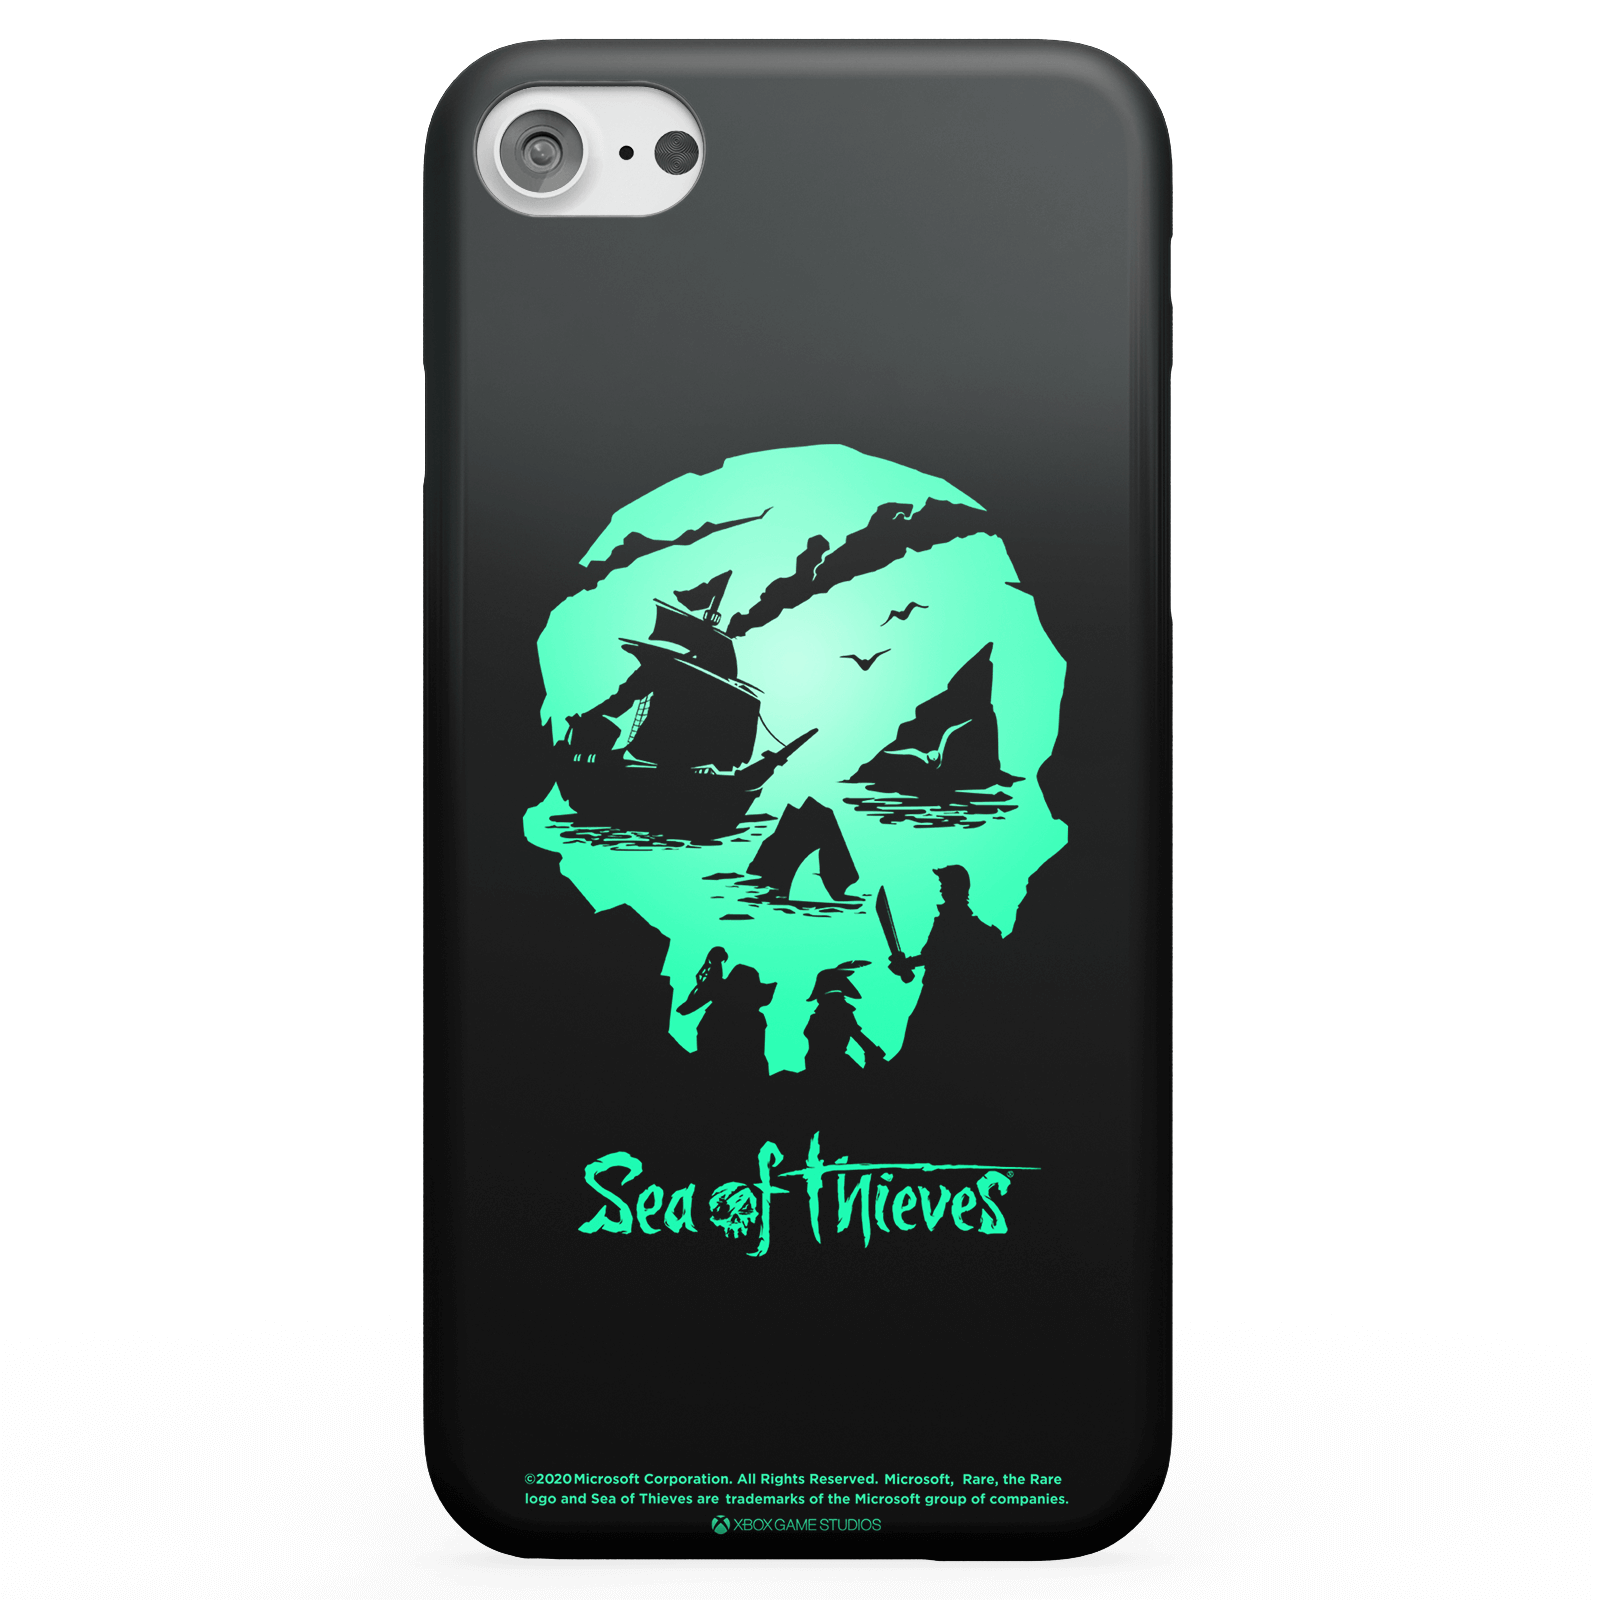 Sea Of Thieves 2nd Anniversary Phone Case for iPhone and Android - iPhone 6 Plus - Tough Case - Matte